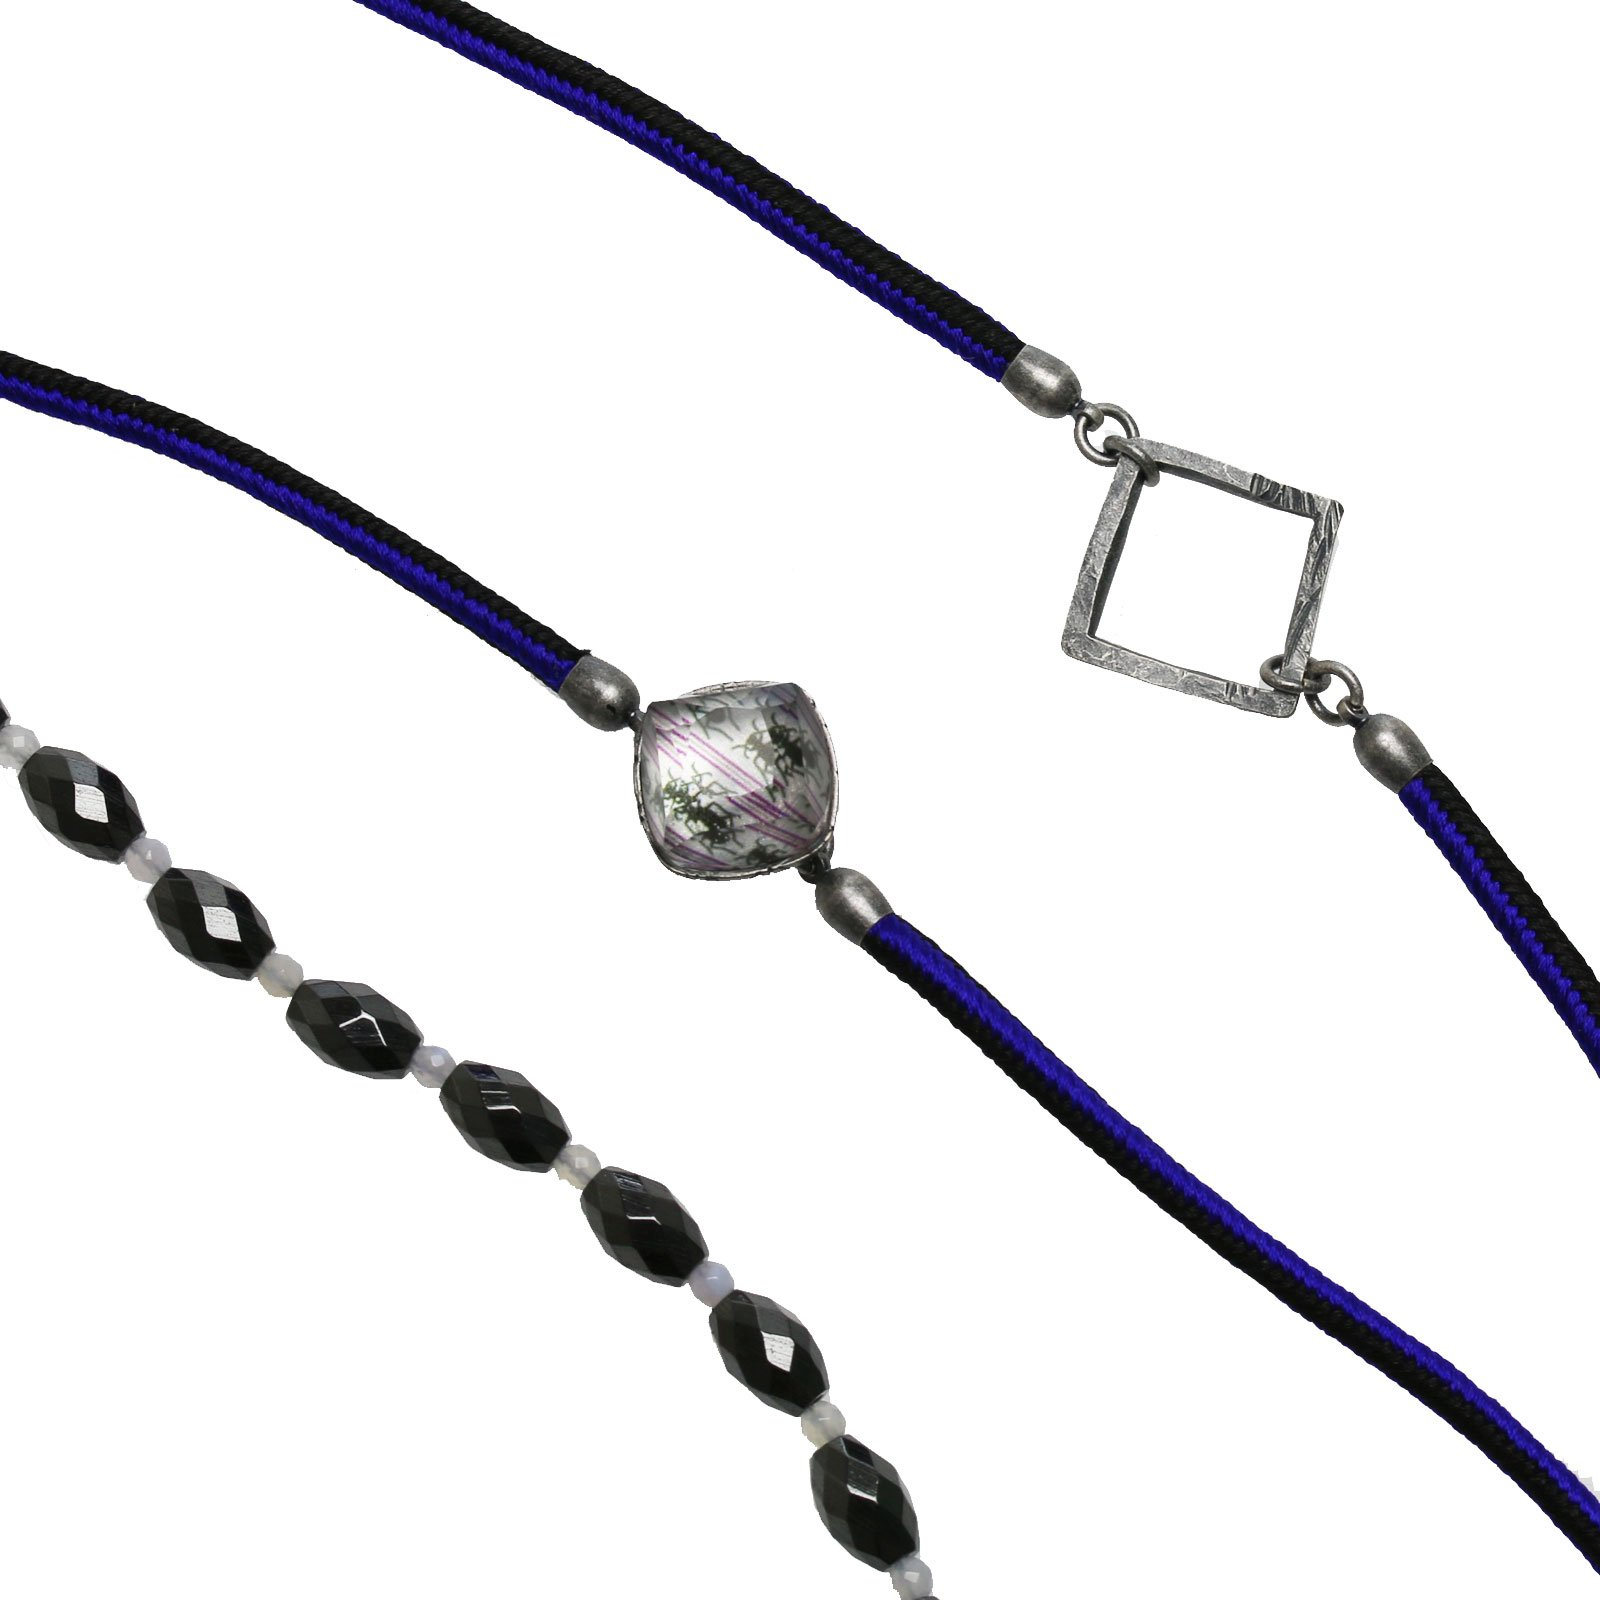 Tamarusan Glasses Code Purple Hanumyo Hematite Magnetically Braided Braid by TAMARUSAN